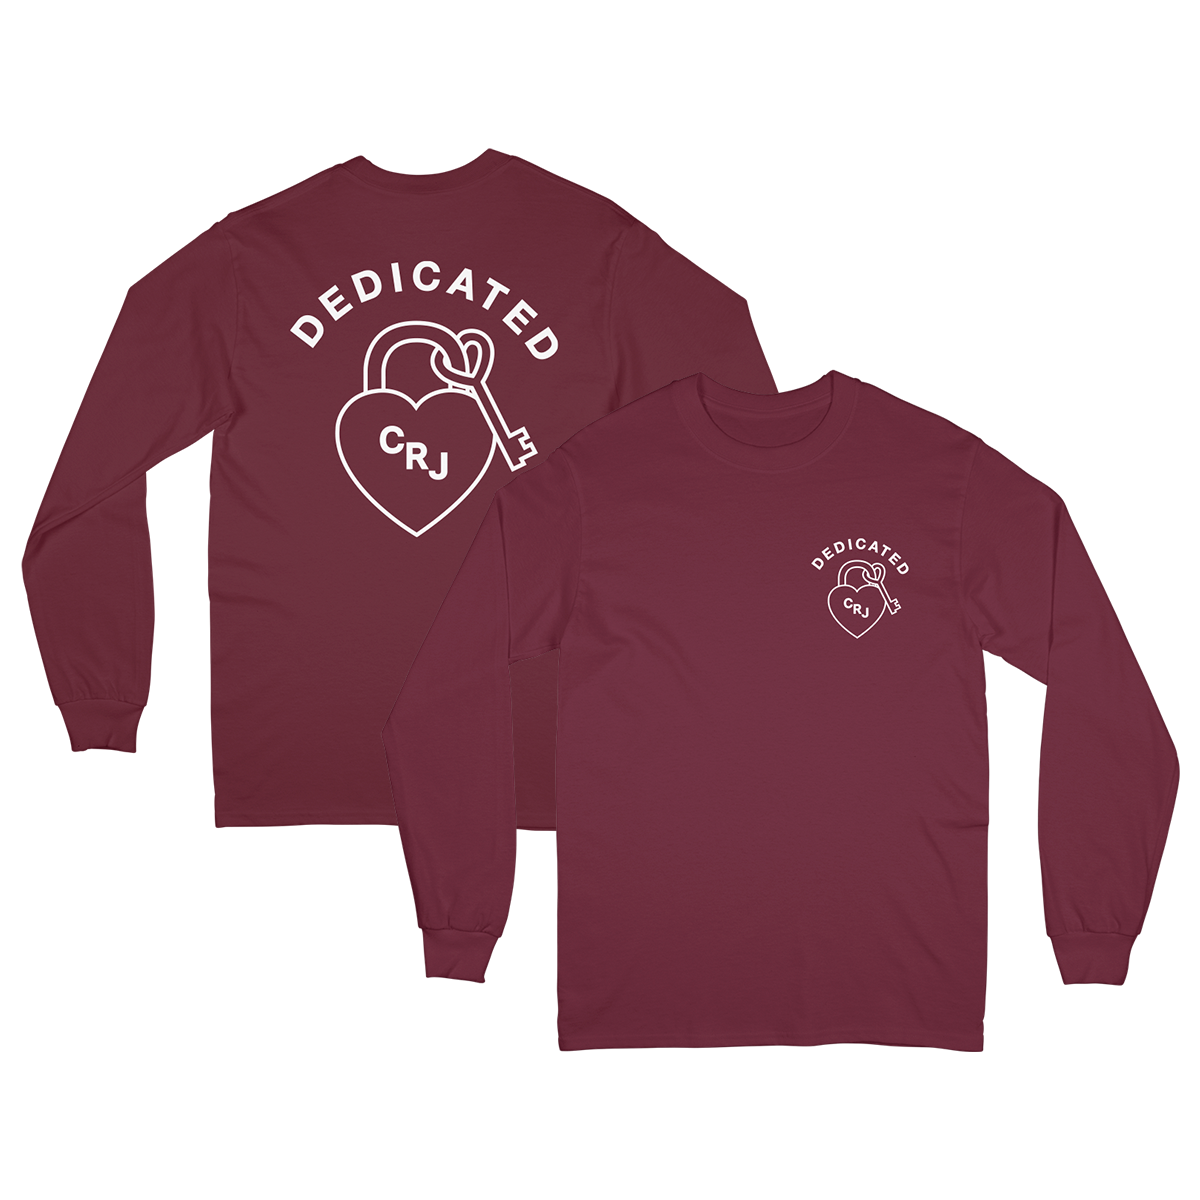 Dedicated Maroon Long Sleeve Tee